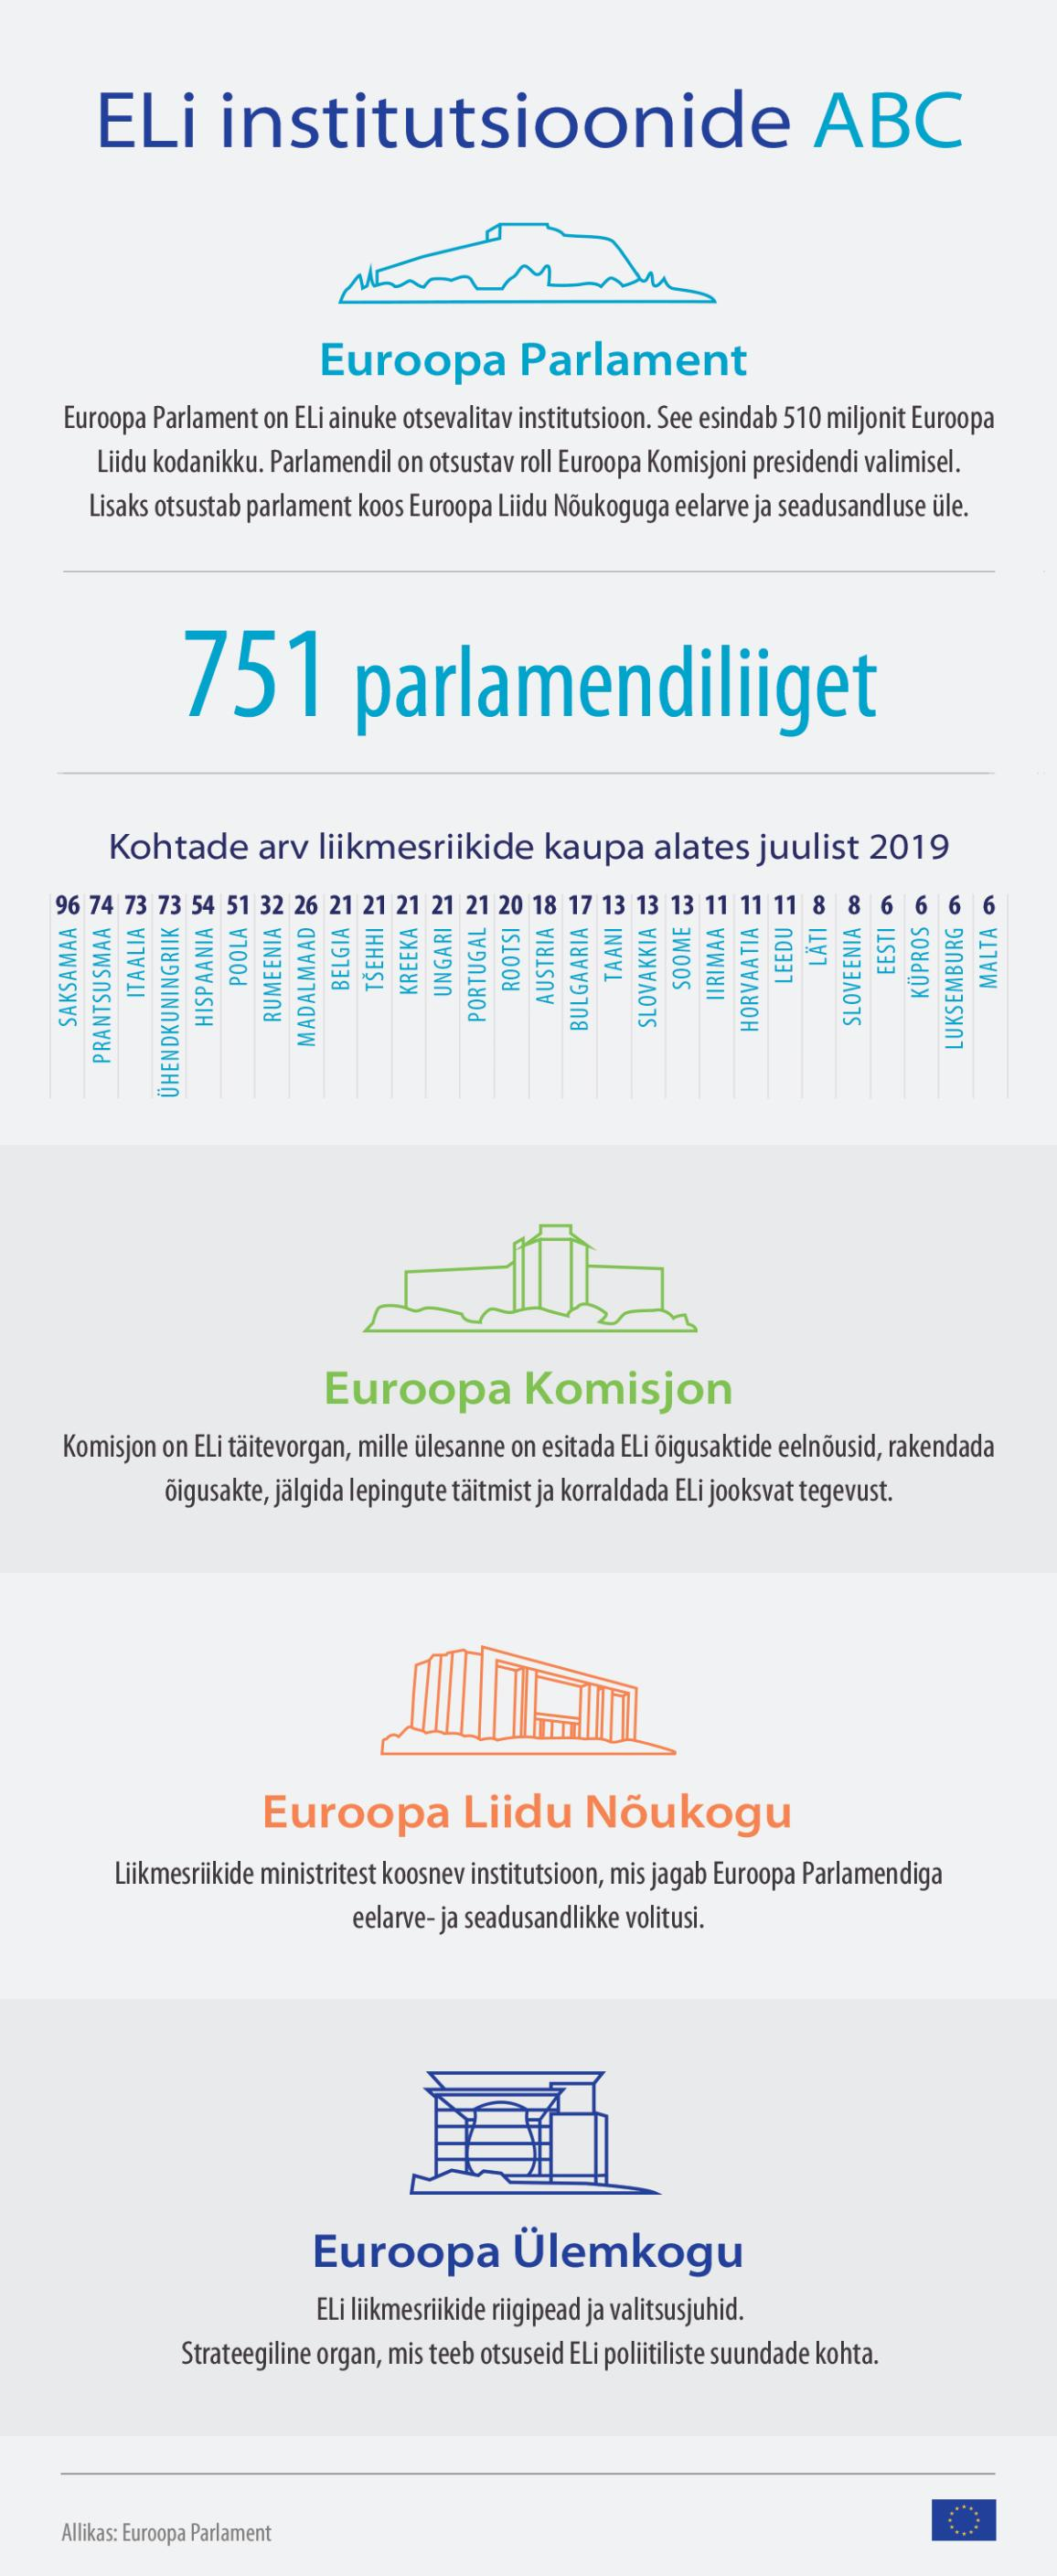 infographic on European election 2019 - ABC of the institutions